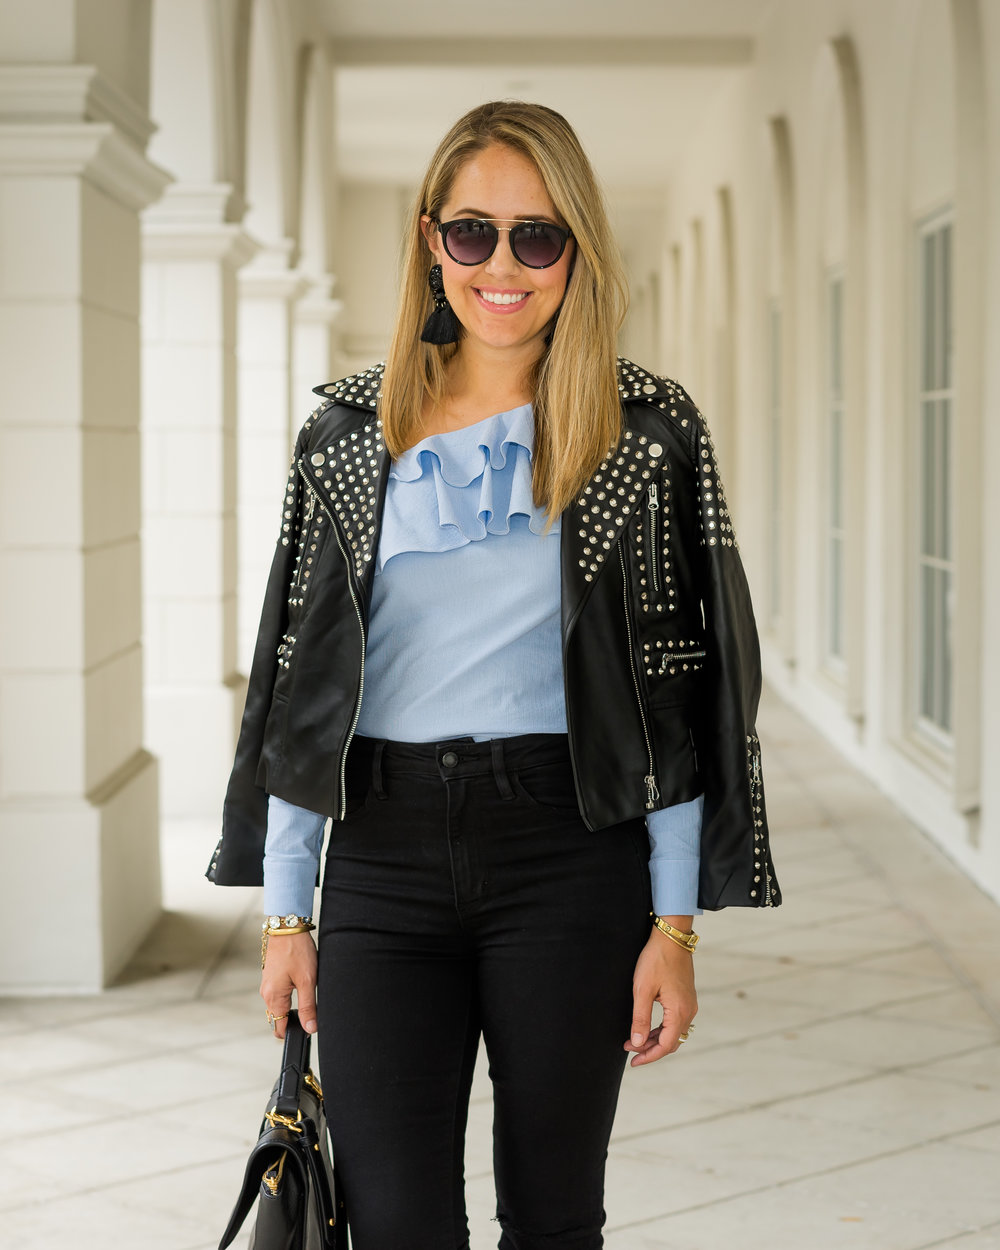 Studded leather jacket, blue ruffle top